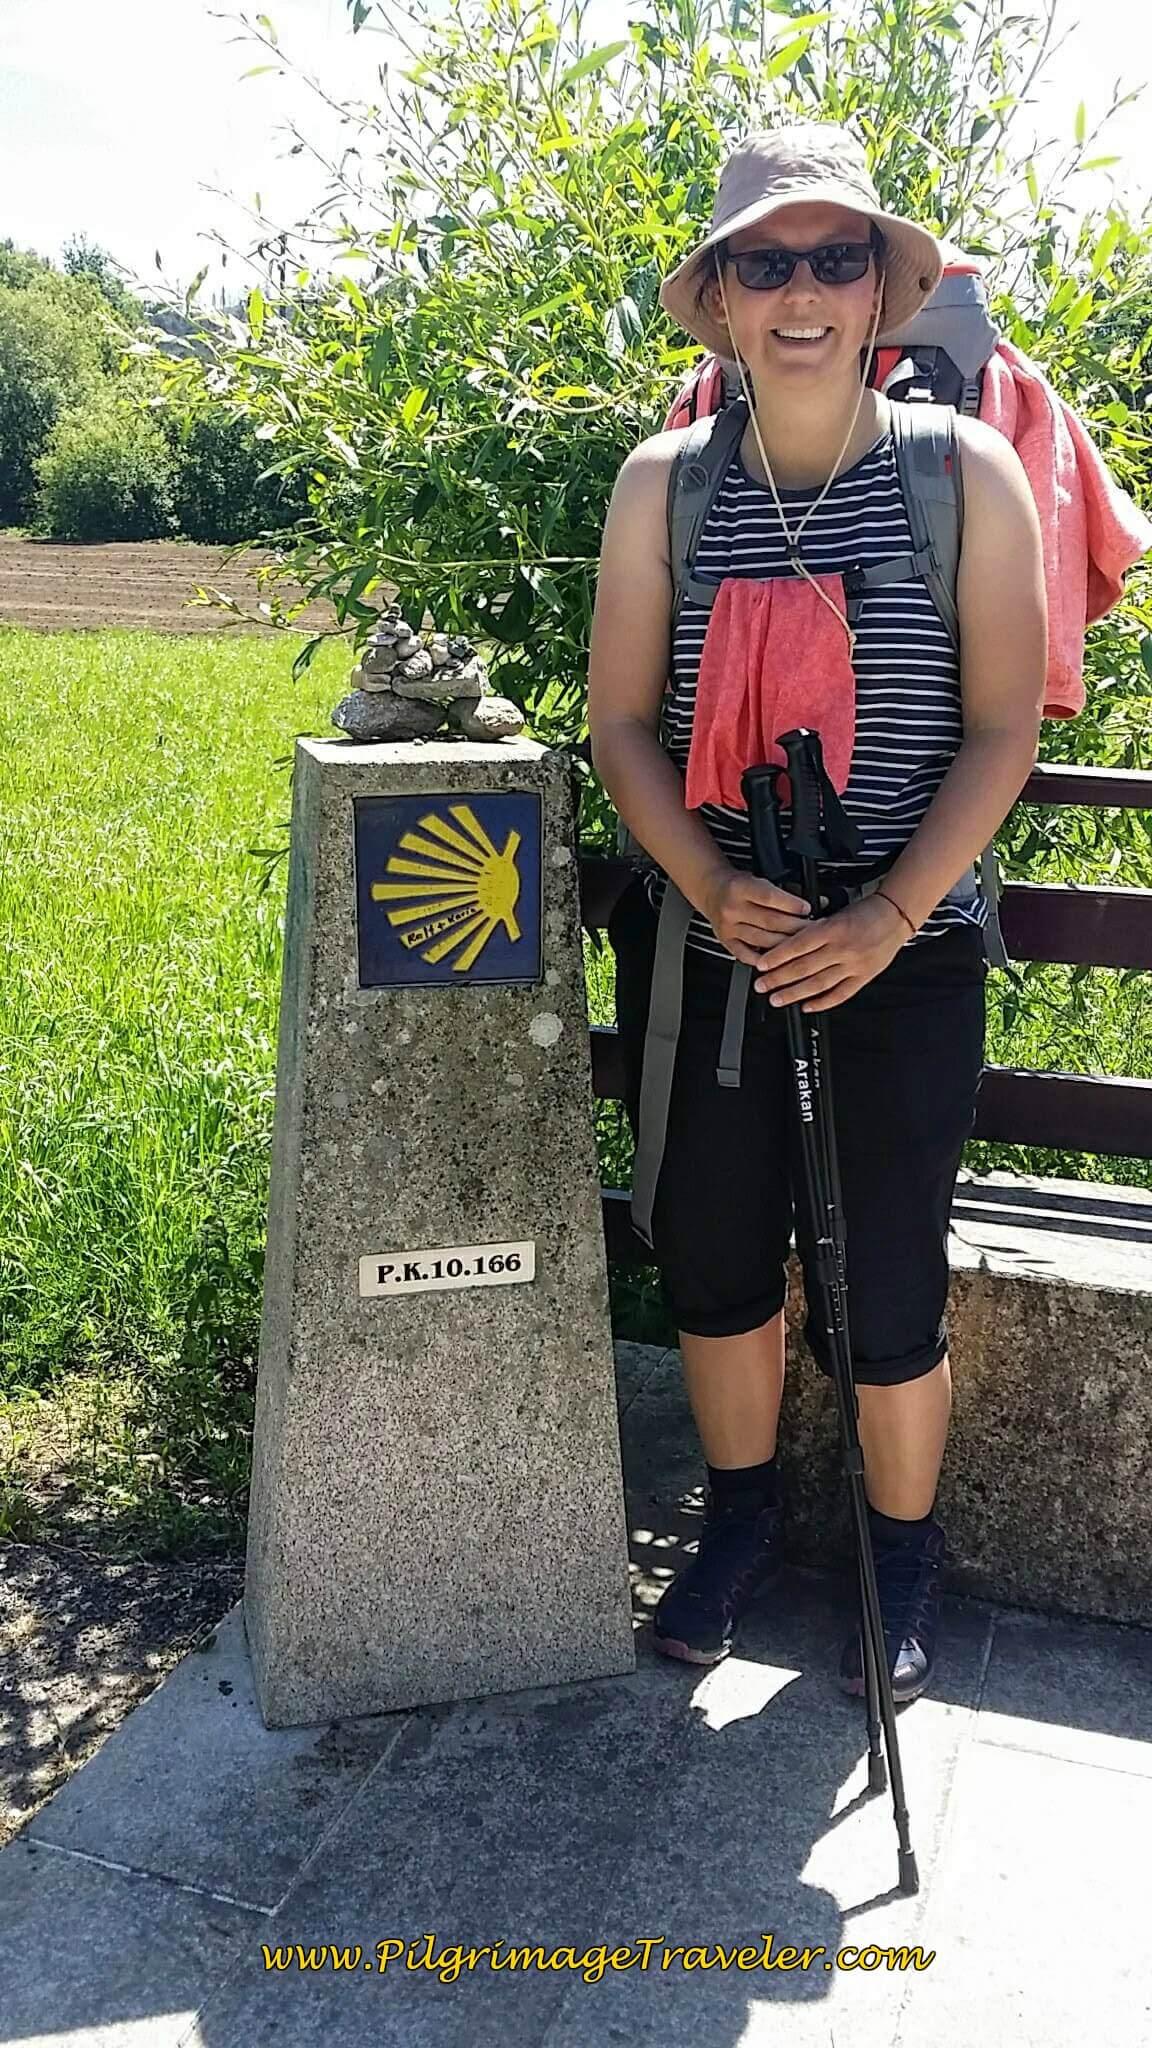 Lisa at the 10 Km Marker on Day Twenty-Four, Portuguese Camino